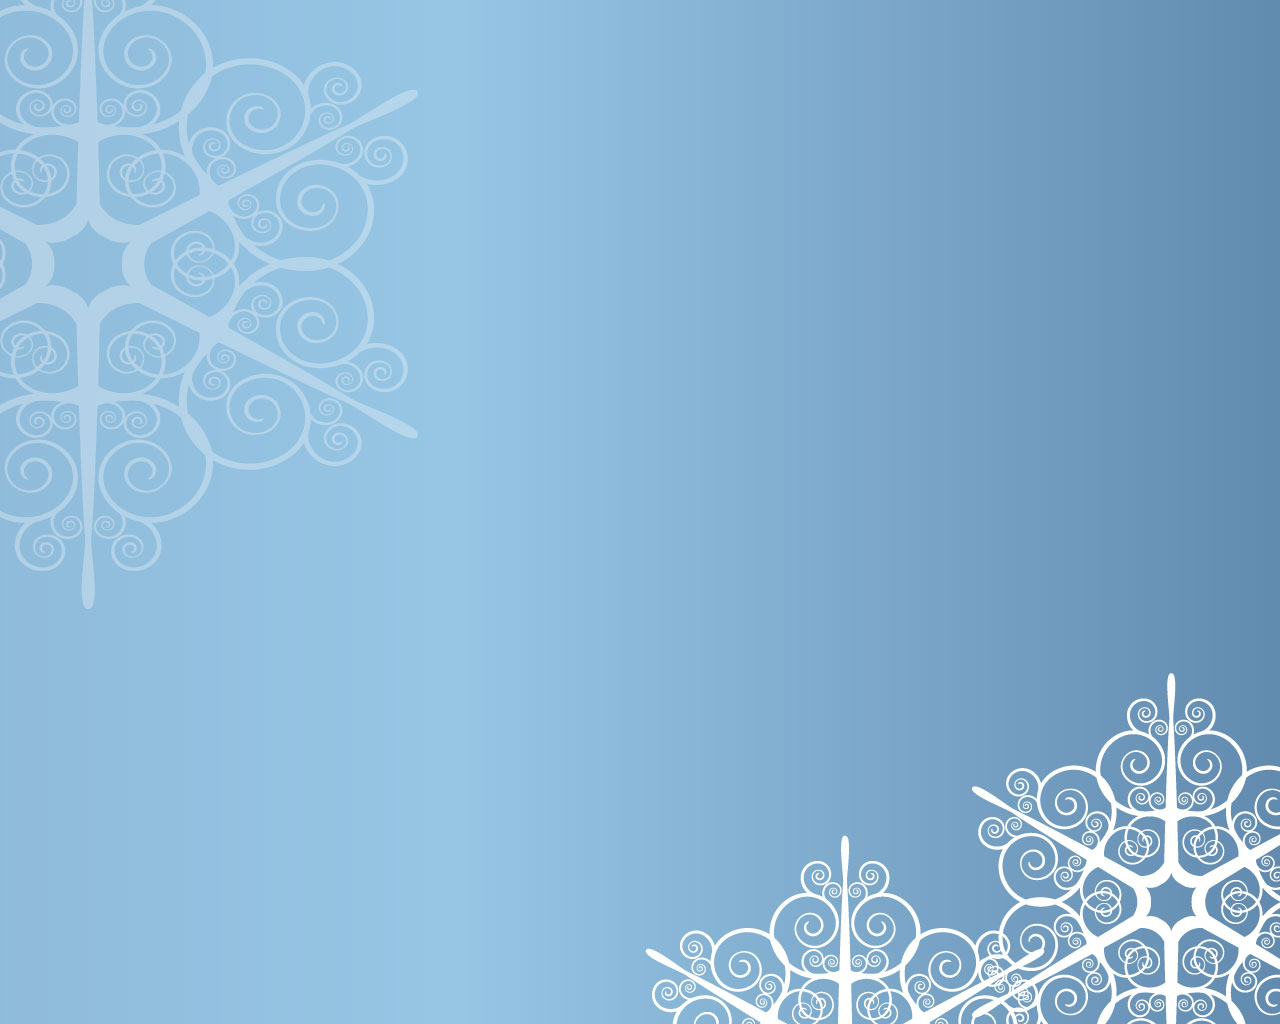 Microsoft clipart christmas background.